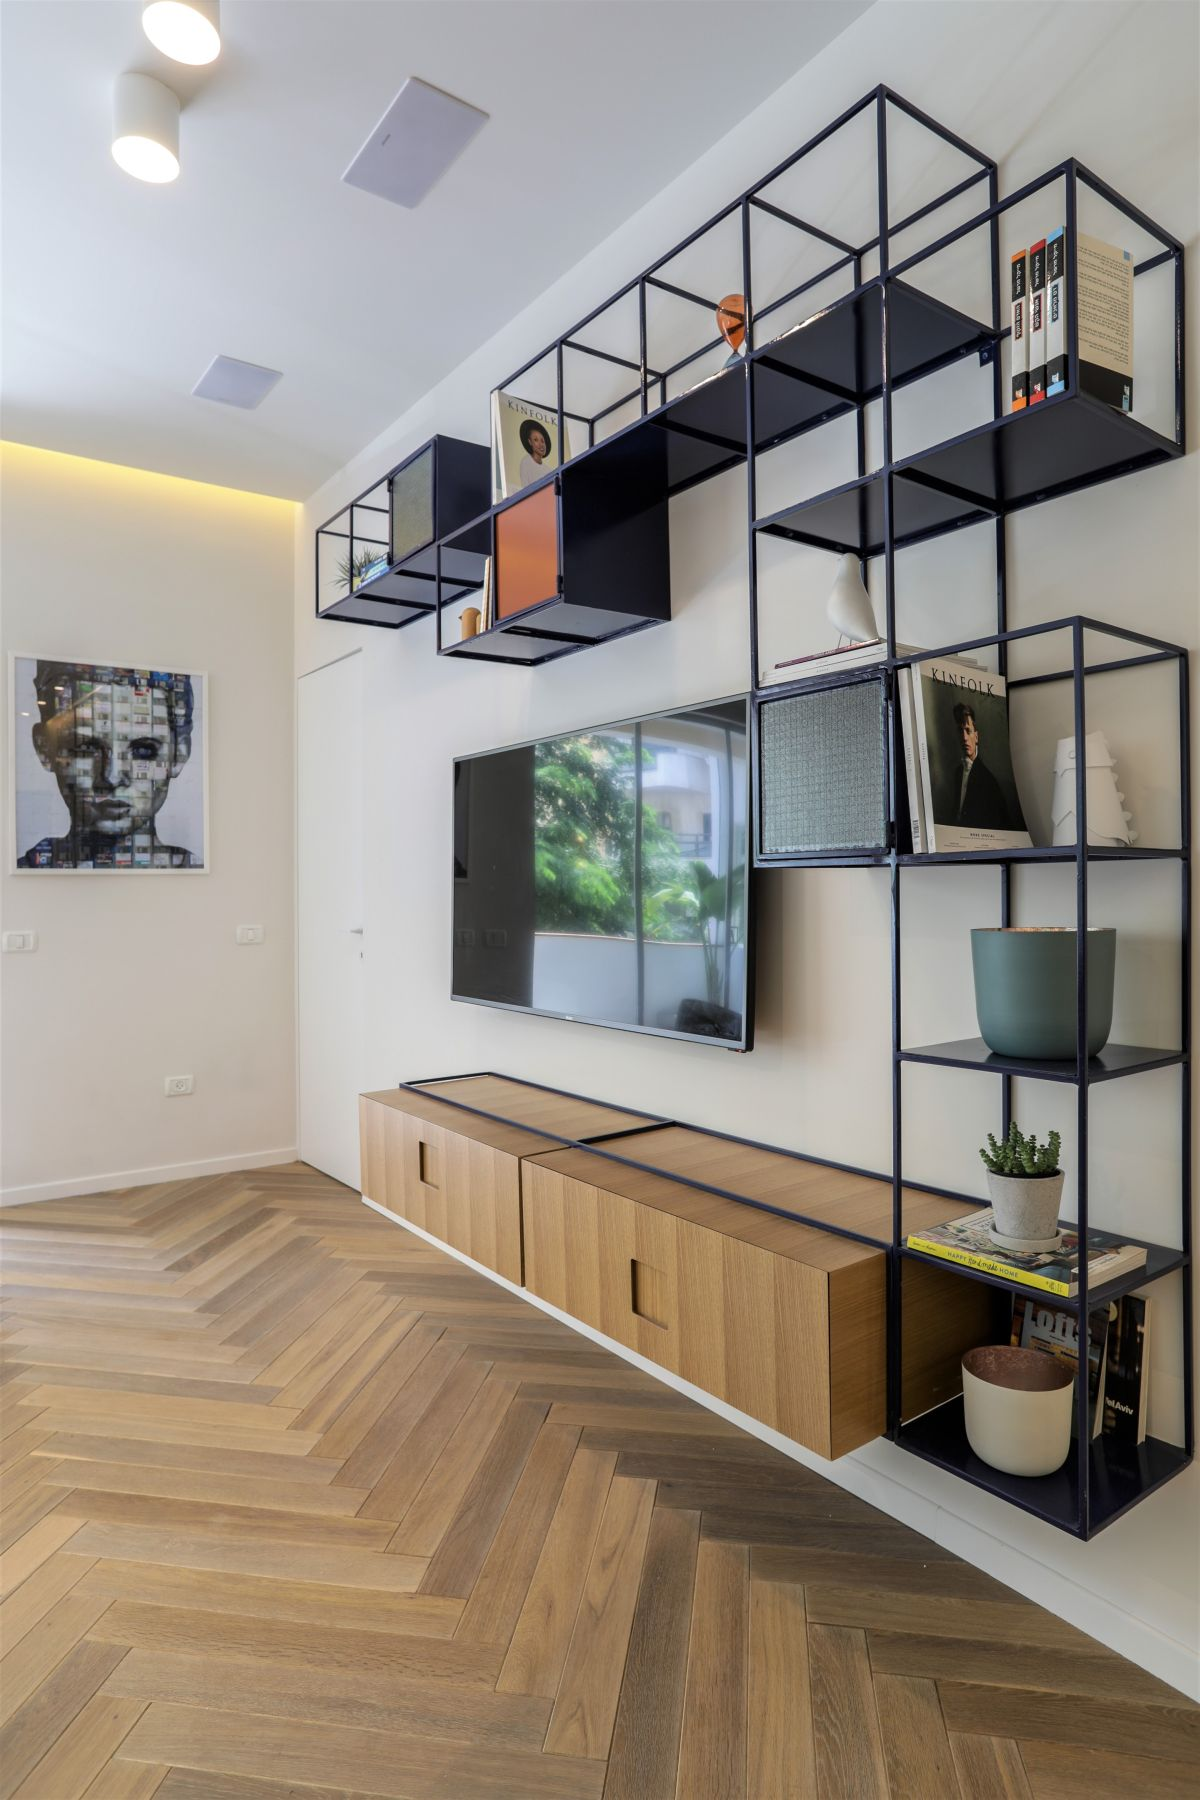 Asymmetrically placed shelving adds interest and draws attention to the window area.